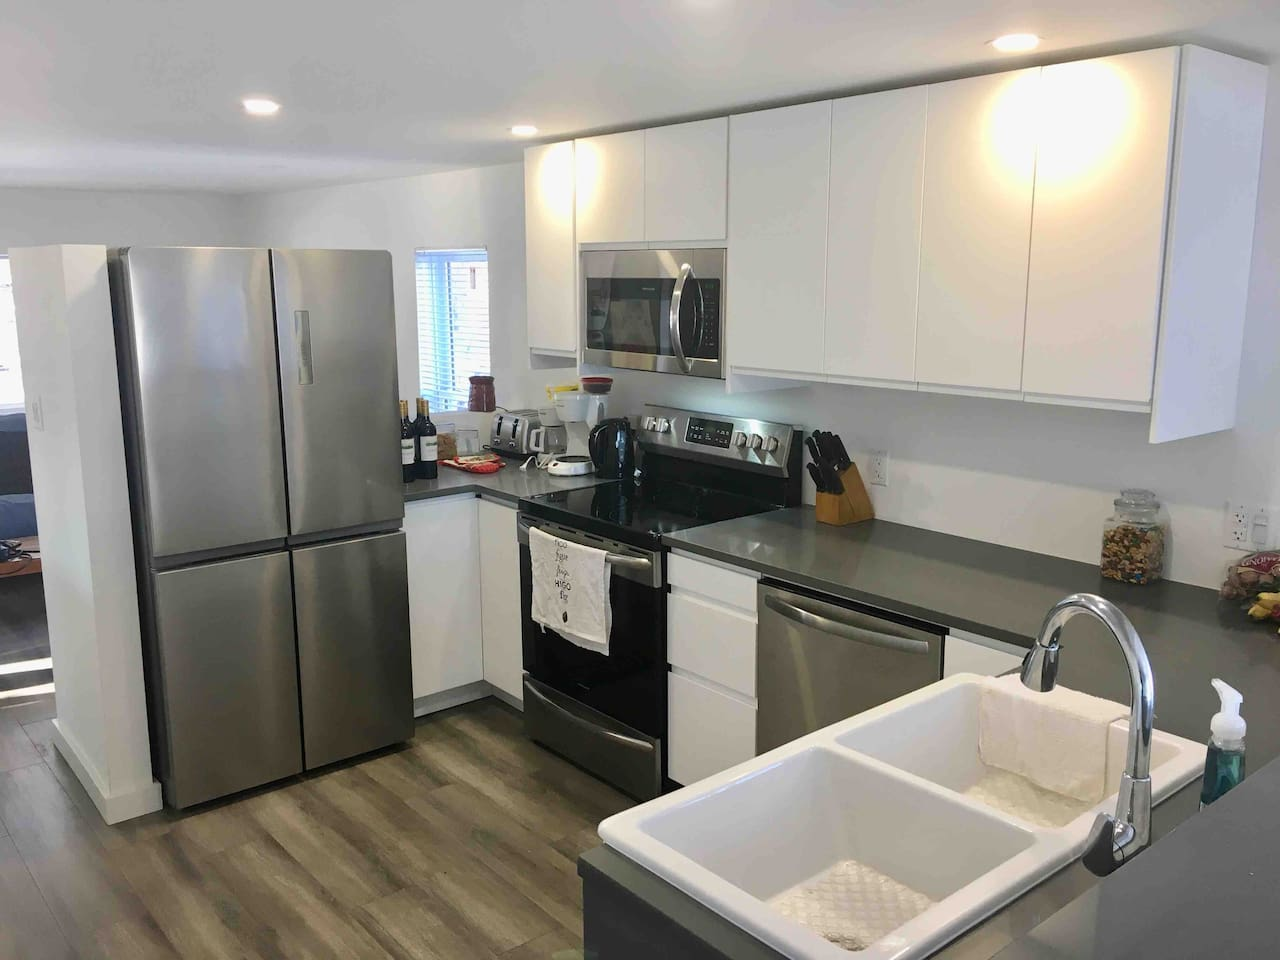 A well stocked kitchen with all new appliances and Quartz countertops